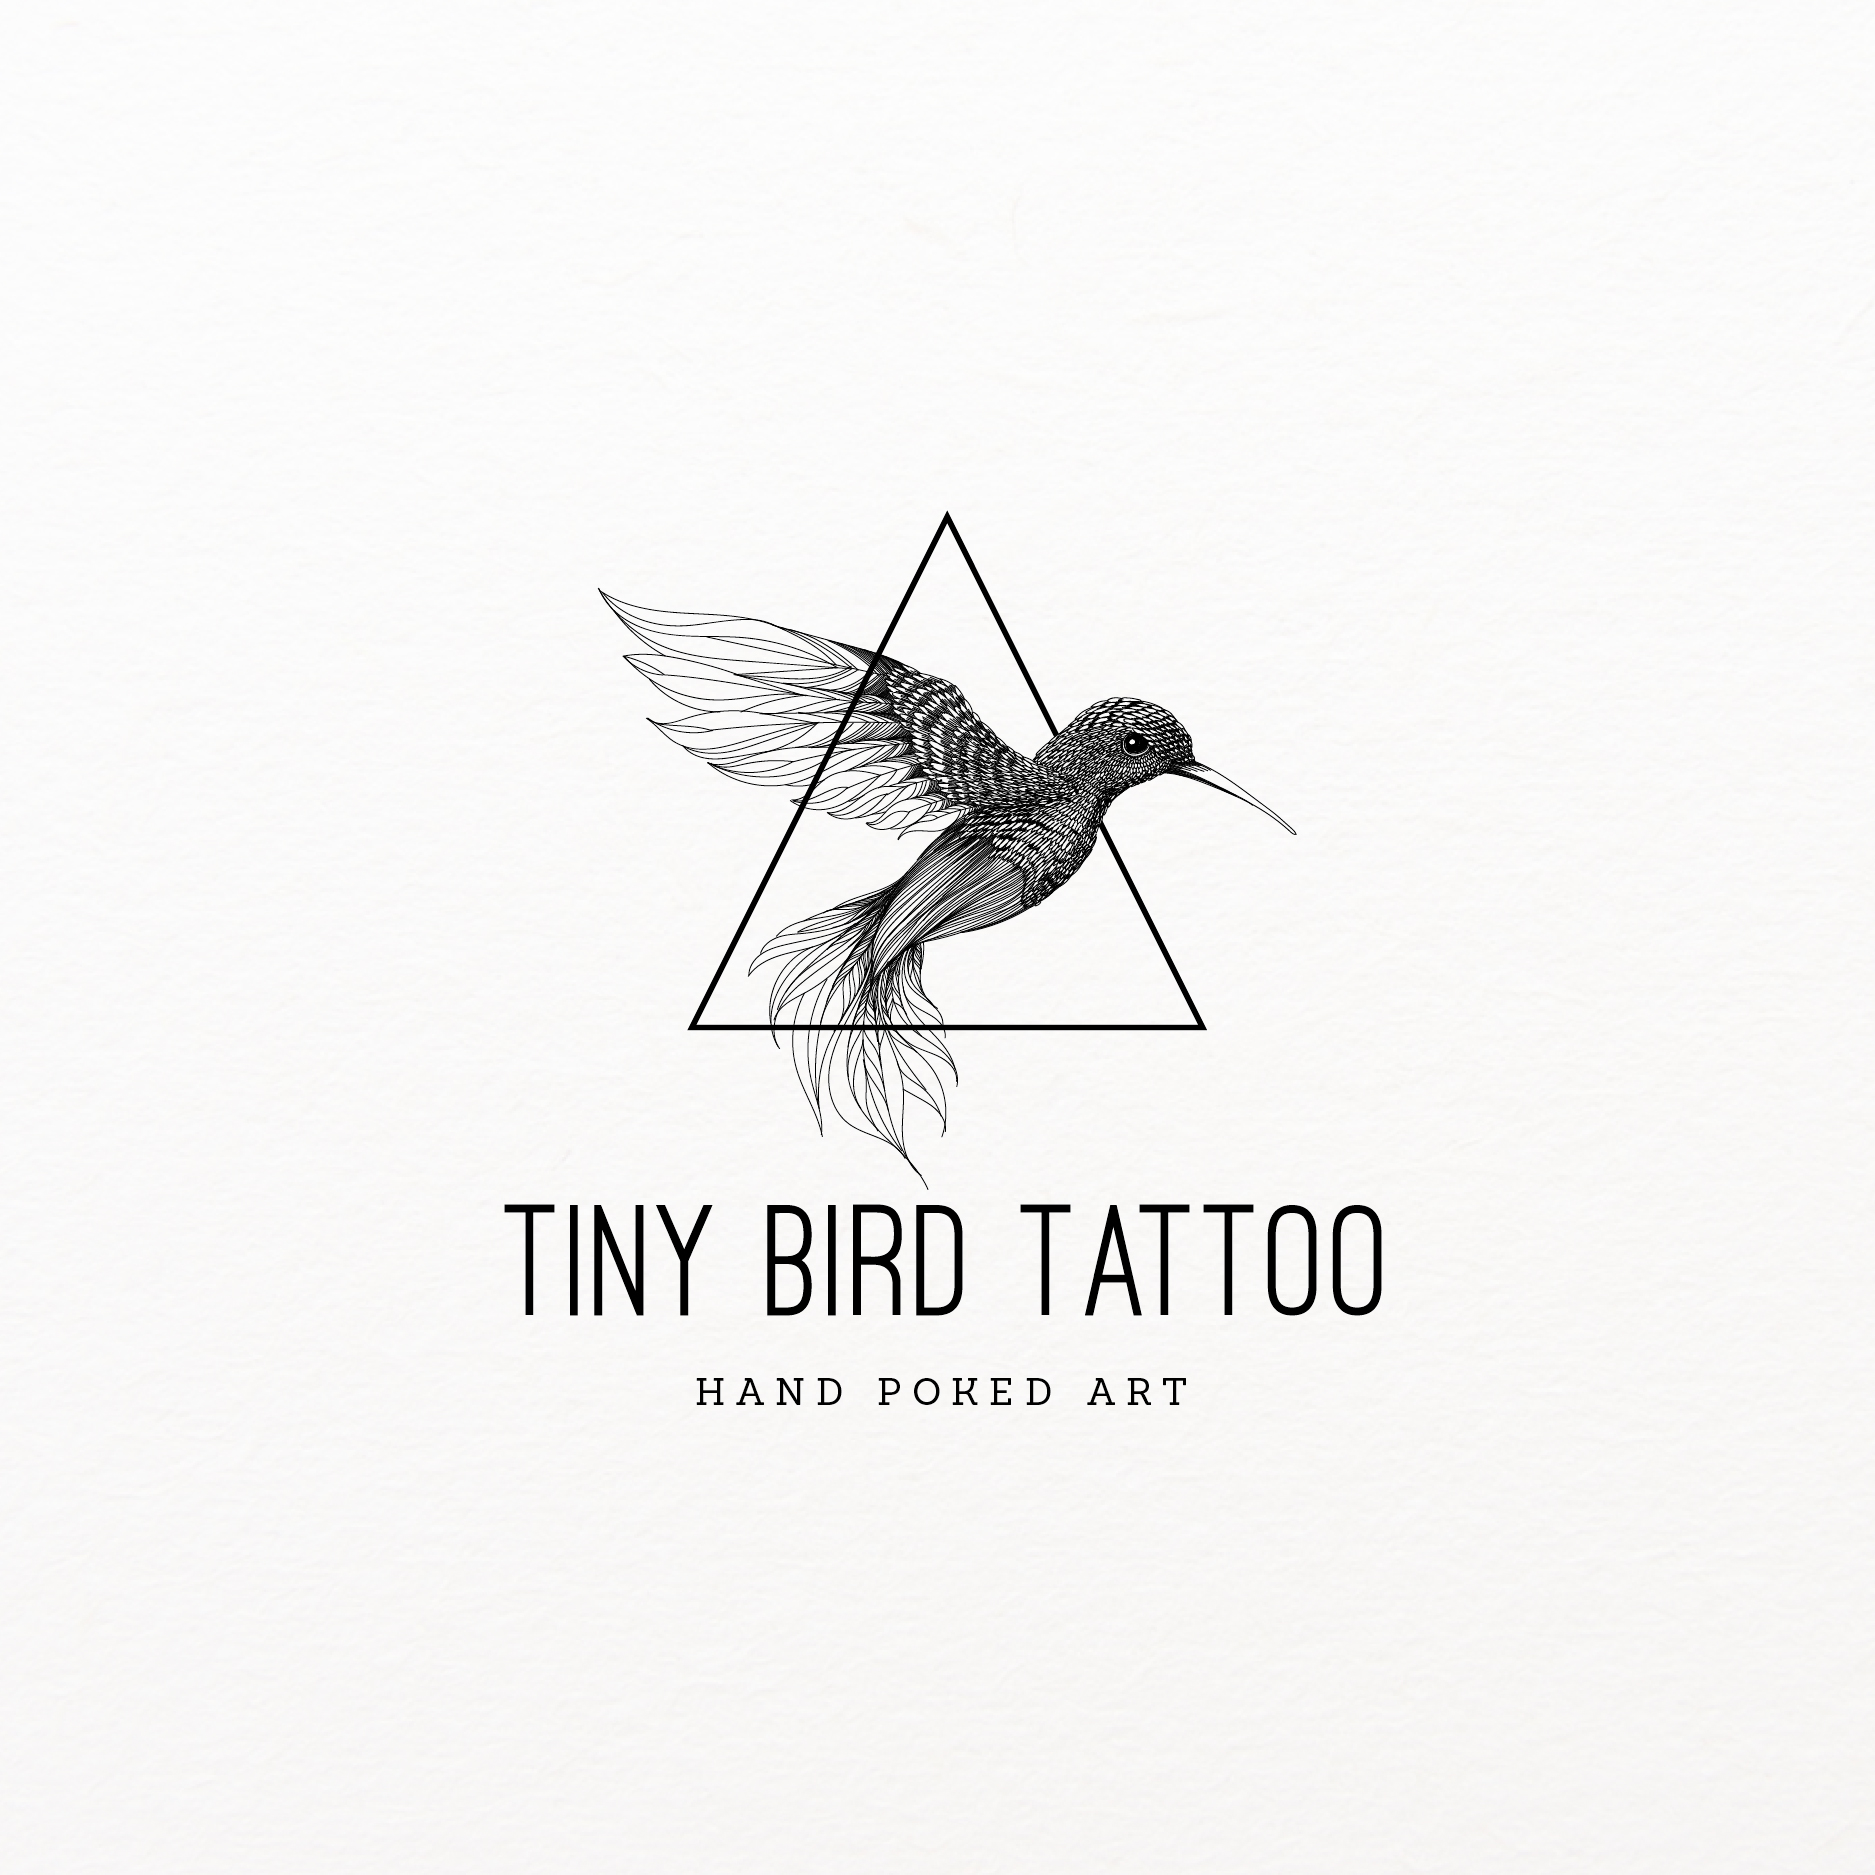 logo design for Tiny bird tattoo